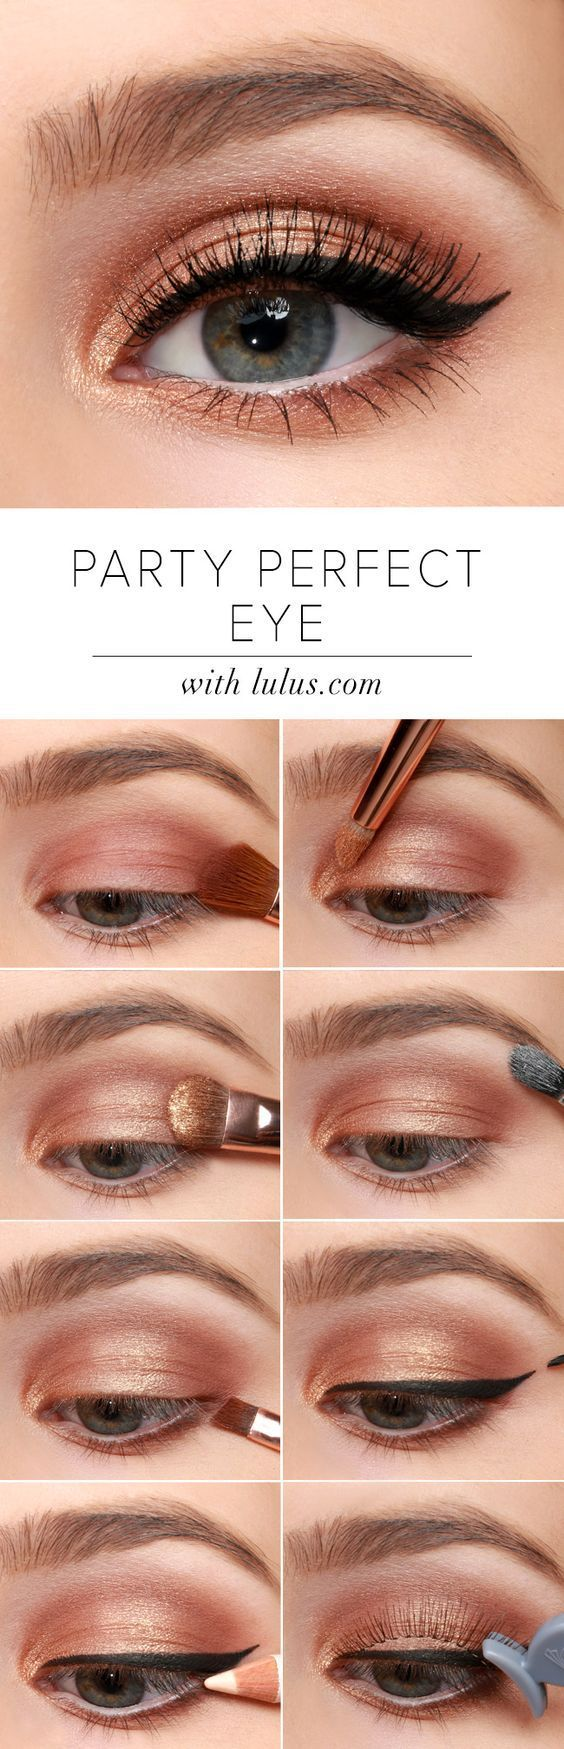 Lulus How-To: Party Perfect Eye Makeup Tutorial